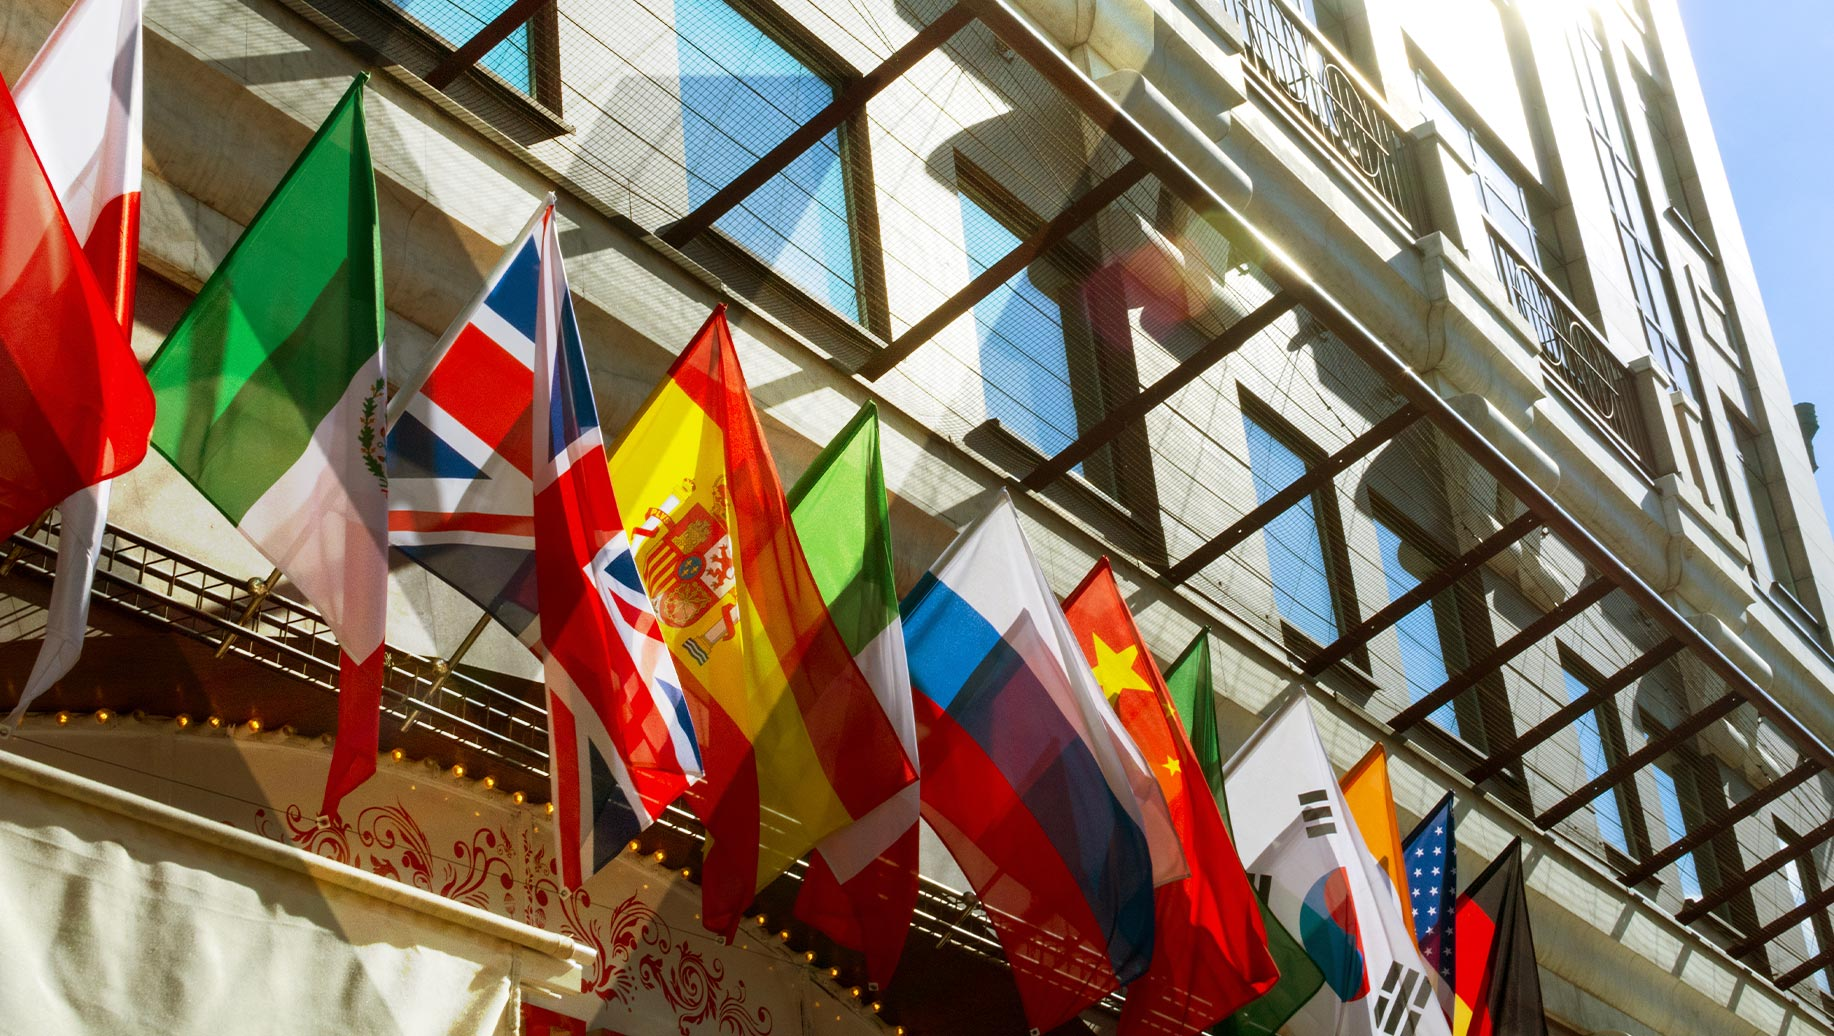 Transfer Pricing During COVID-19: Is RPSM The Best Choice For Multinational Companies?